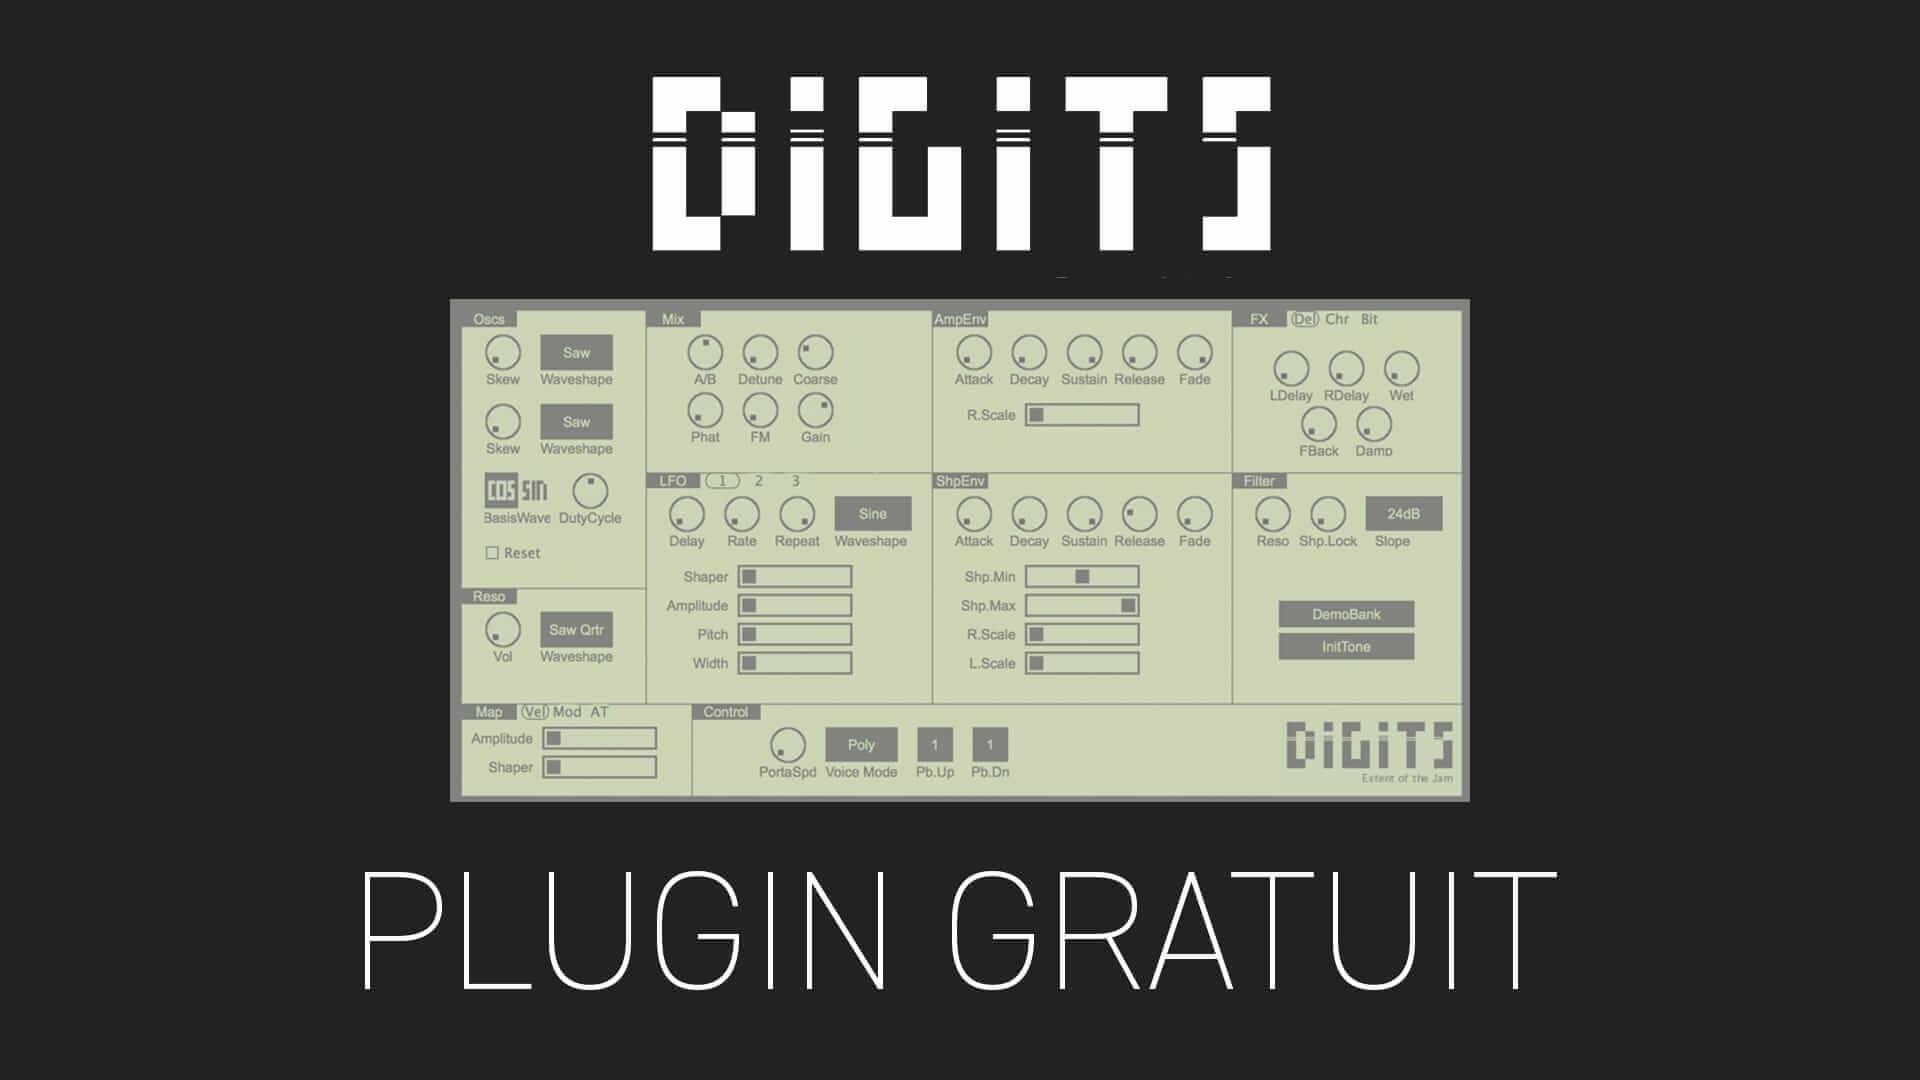 Digits 2 de Extent of the jam Plugin Gratuit